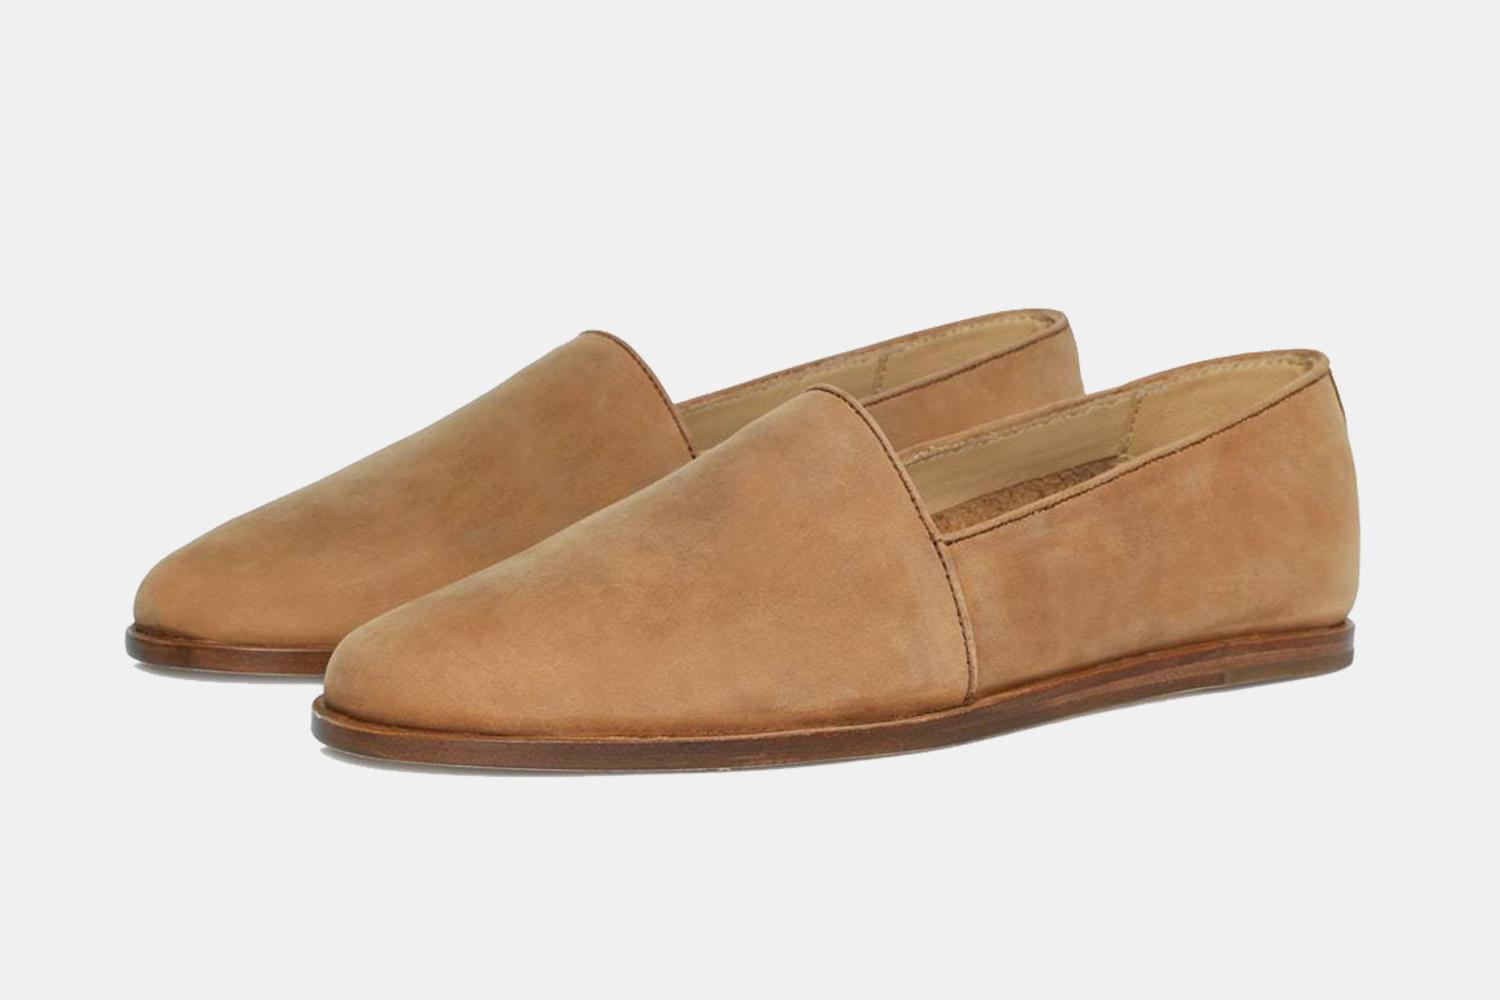 Nisolo Alejandro leather slip-on shoes